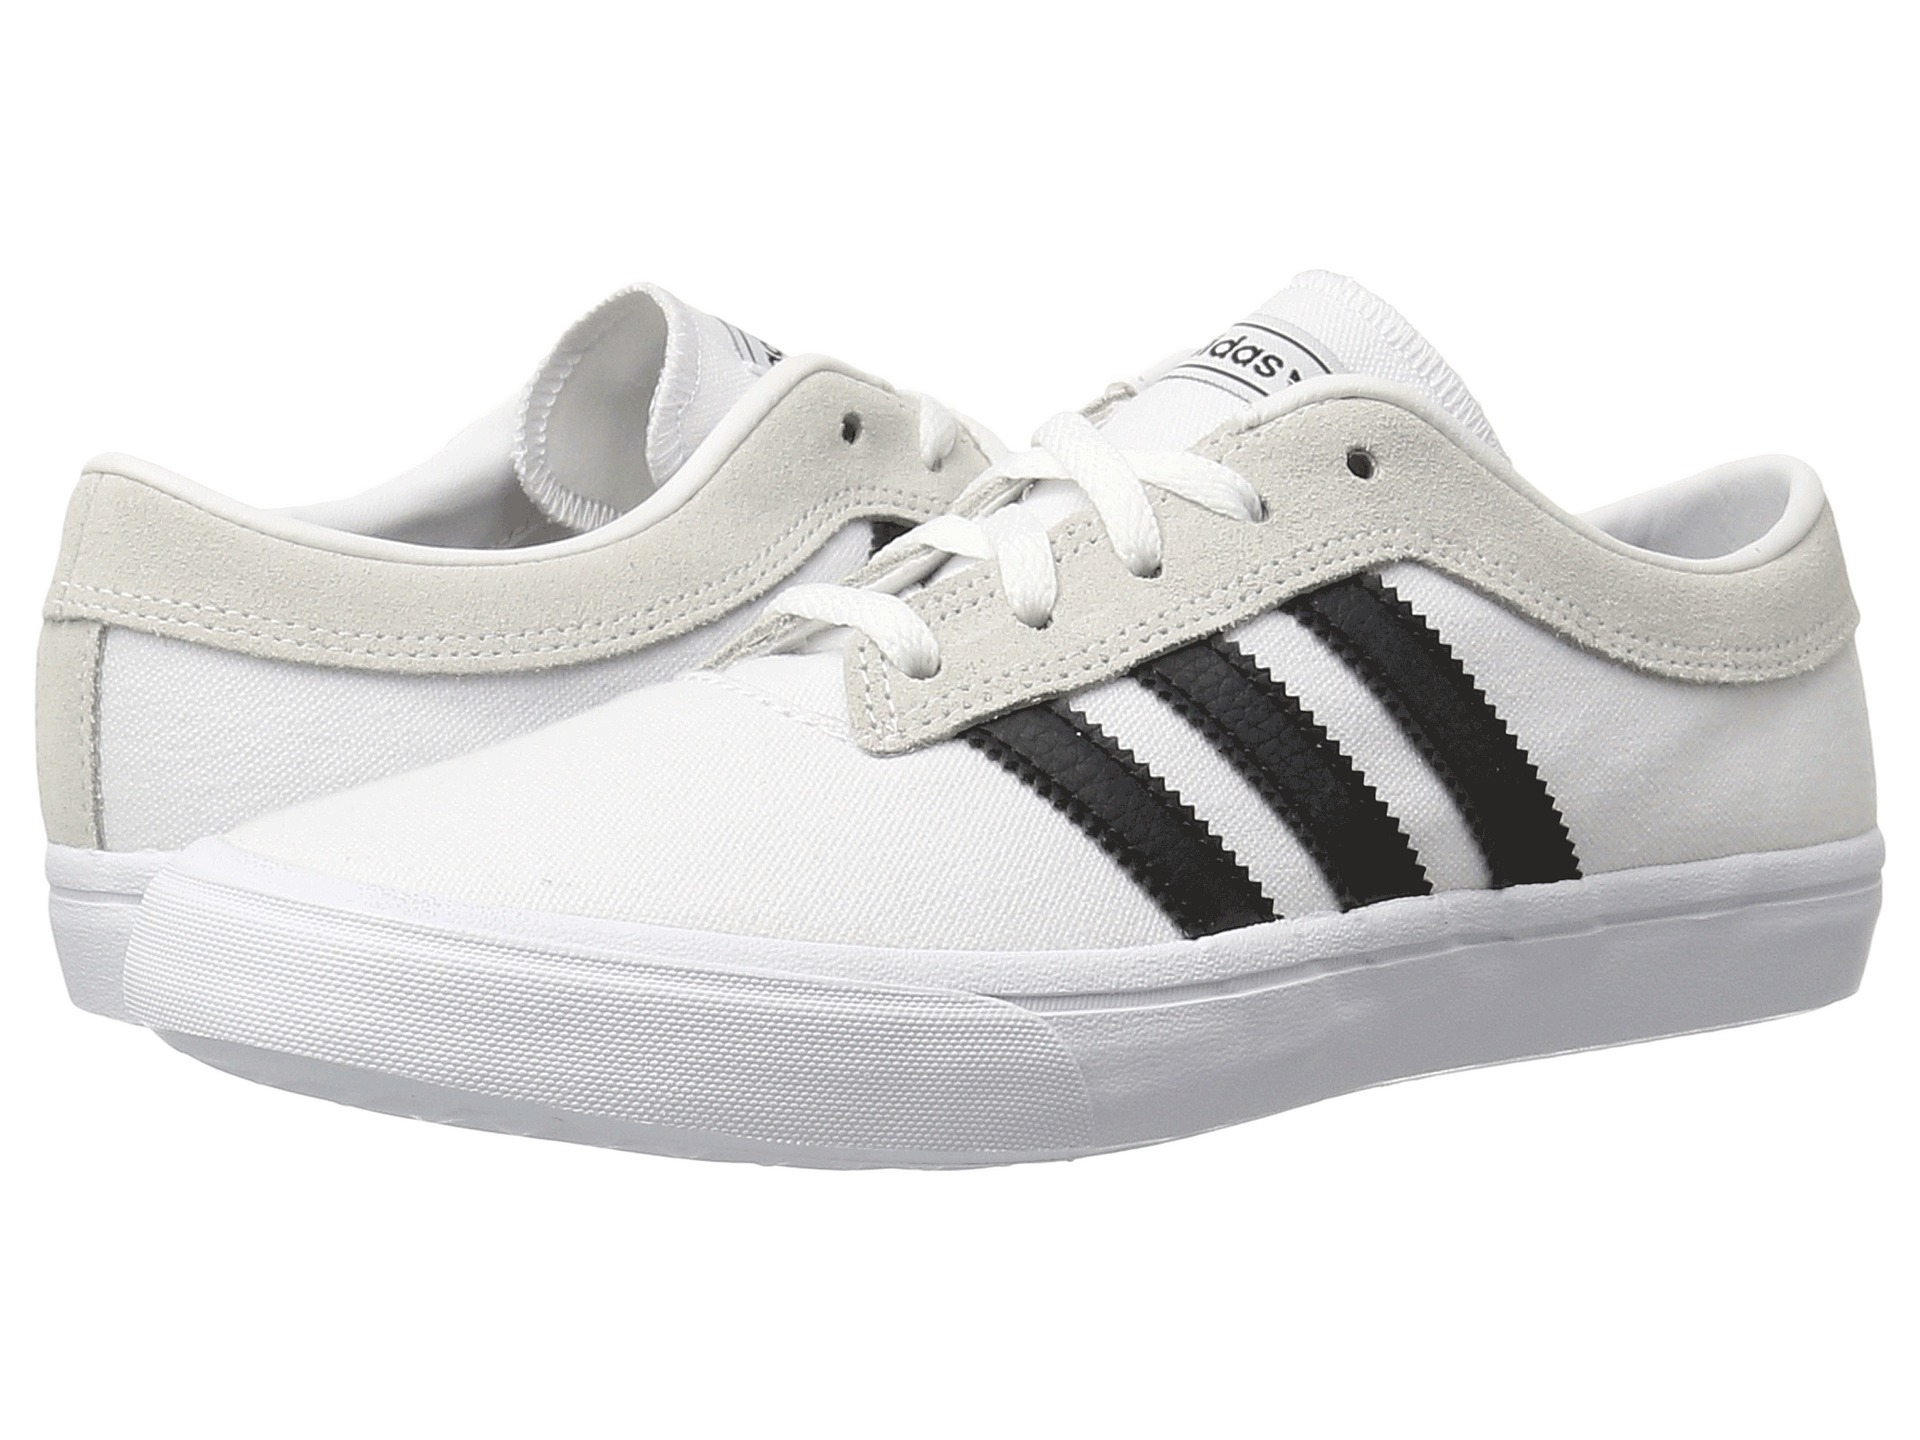 b3f2d76aad3 Lyst - adidas Originals Sellwood in White for Men